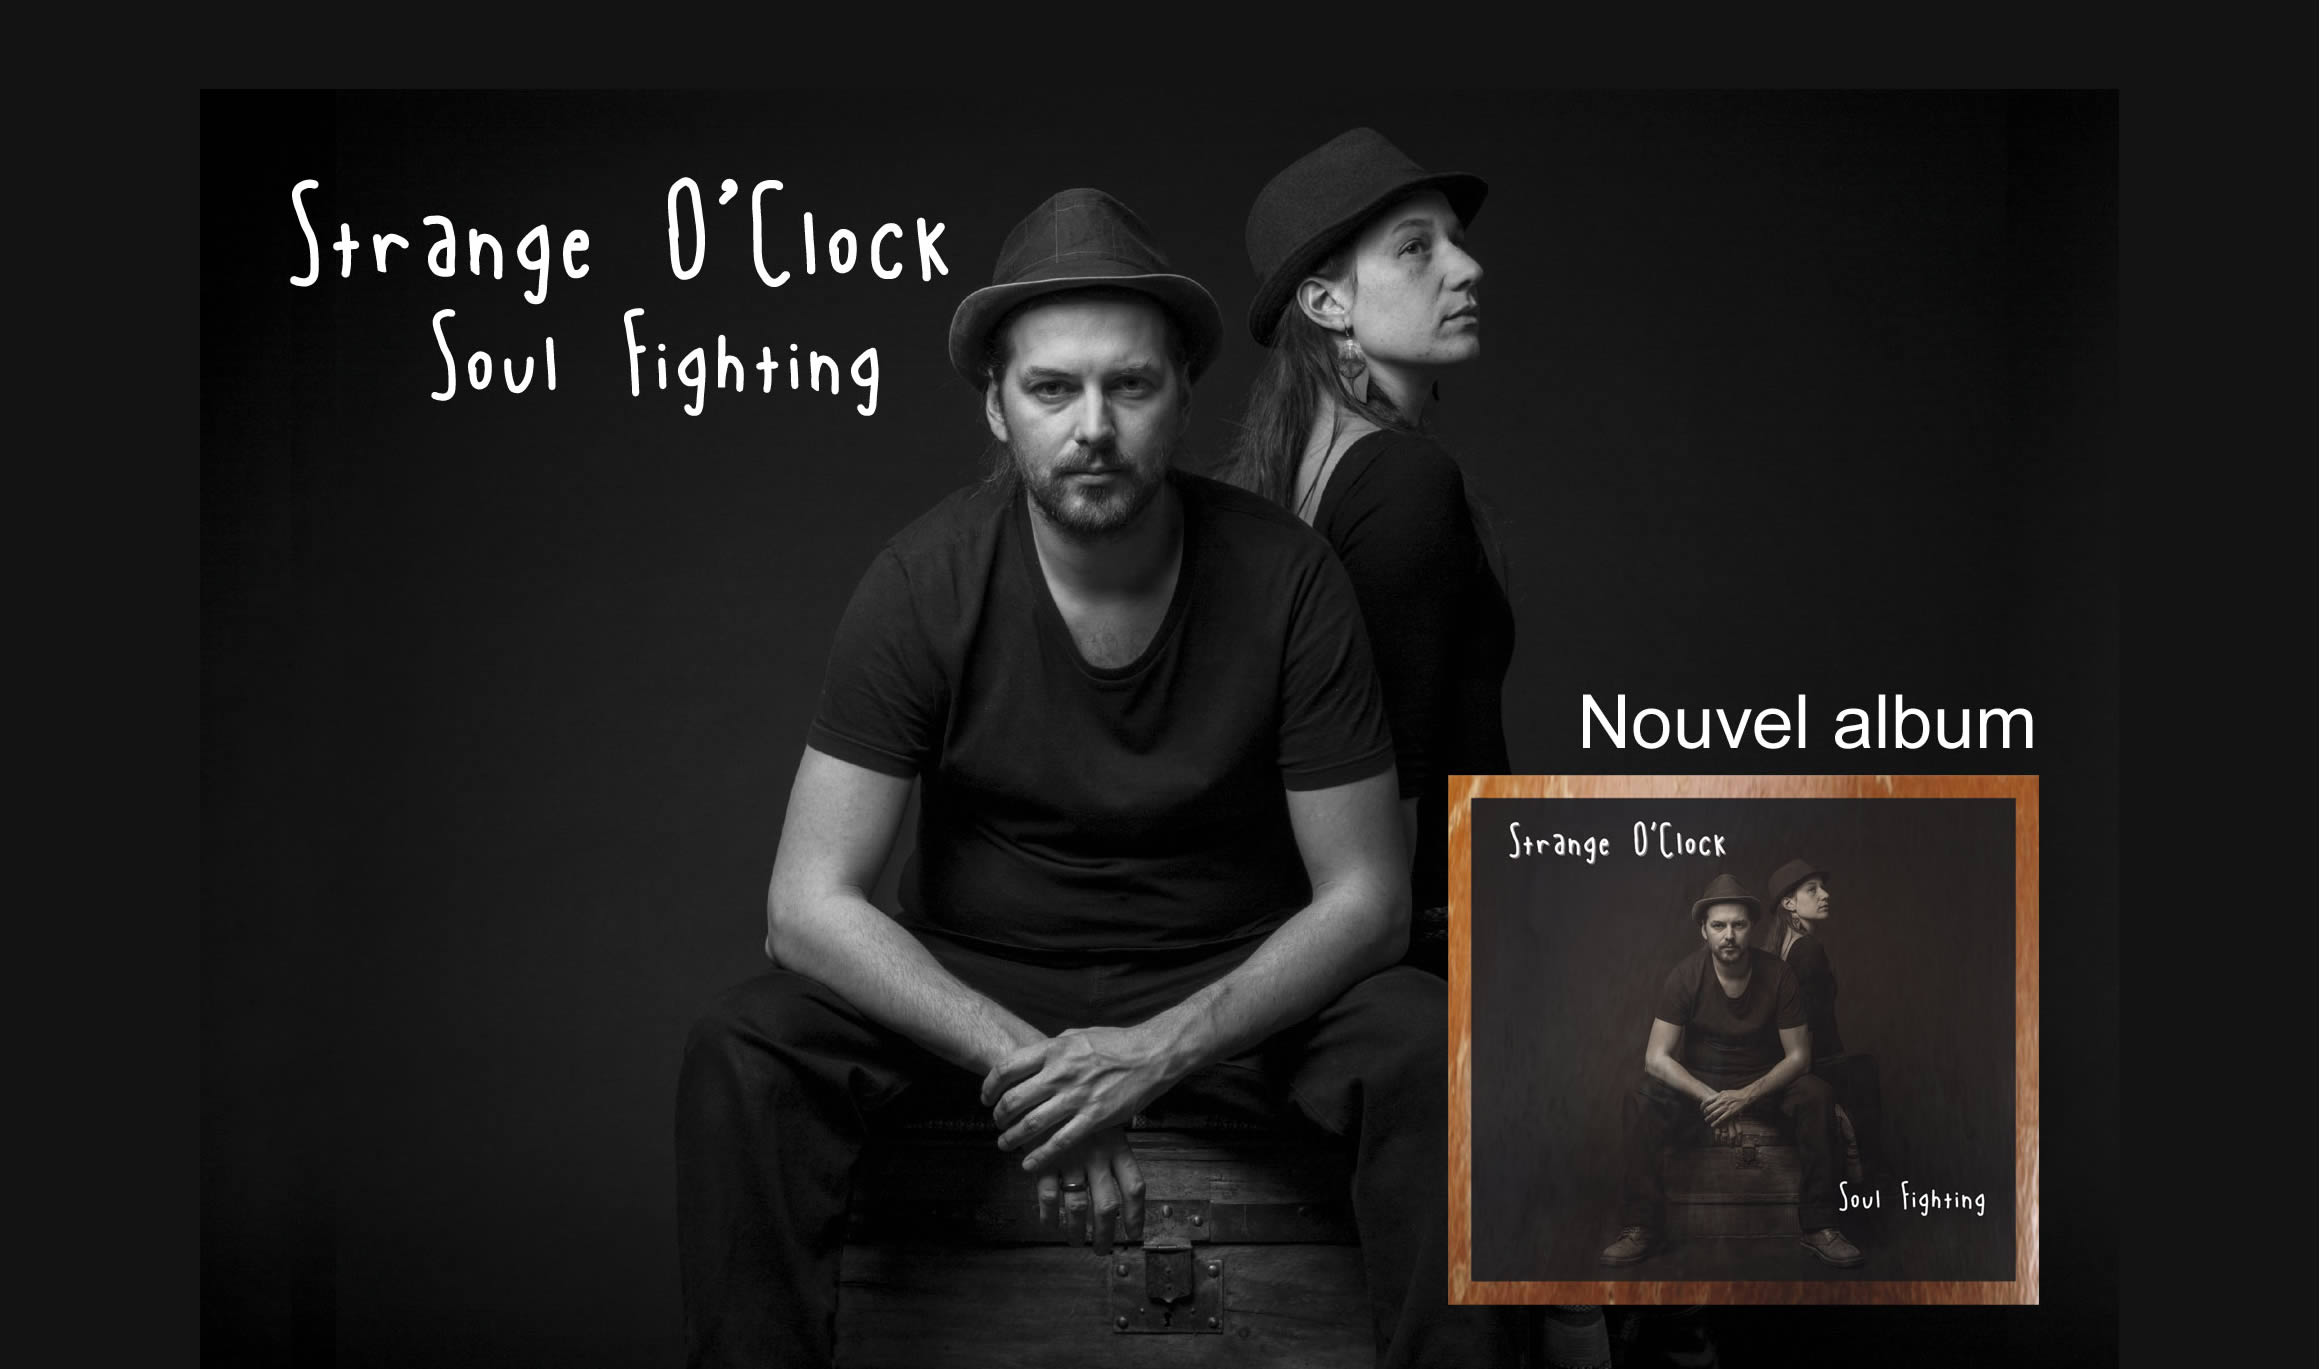 Nouvel album de Strange O'clock - Soul Fighting